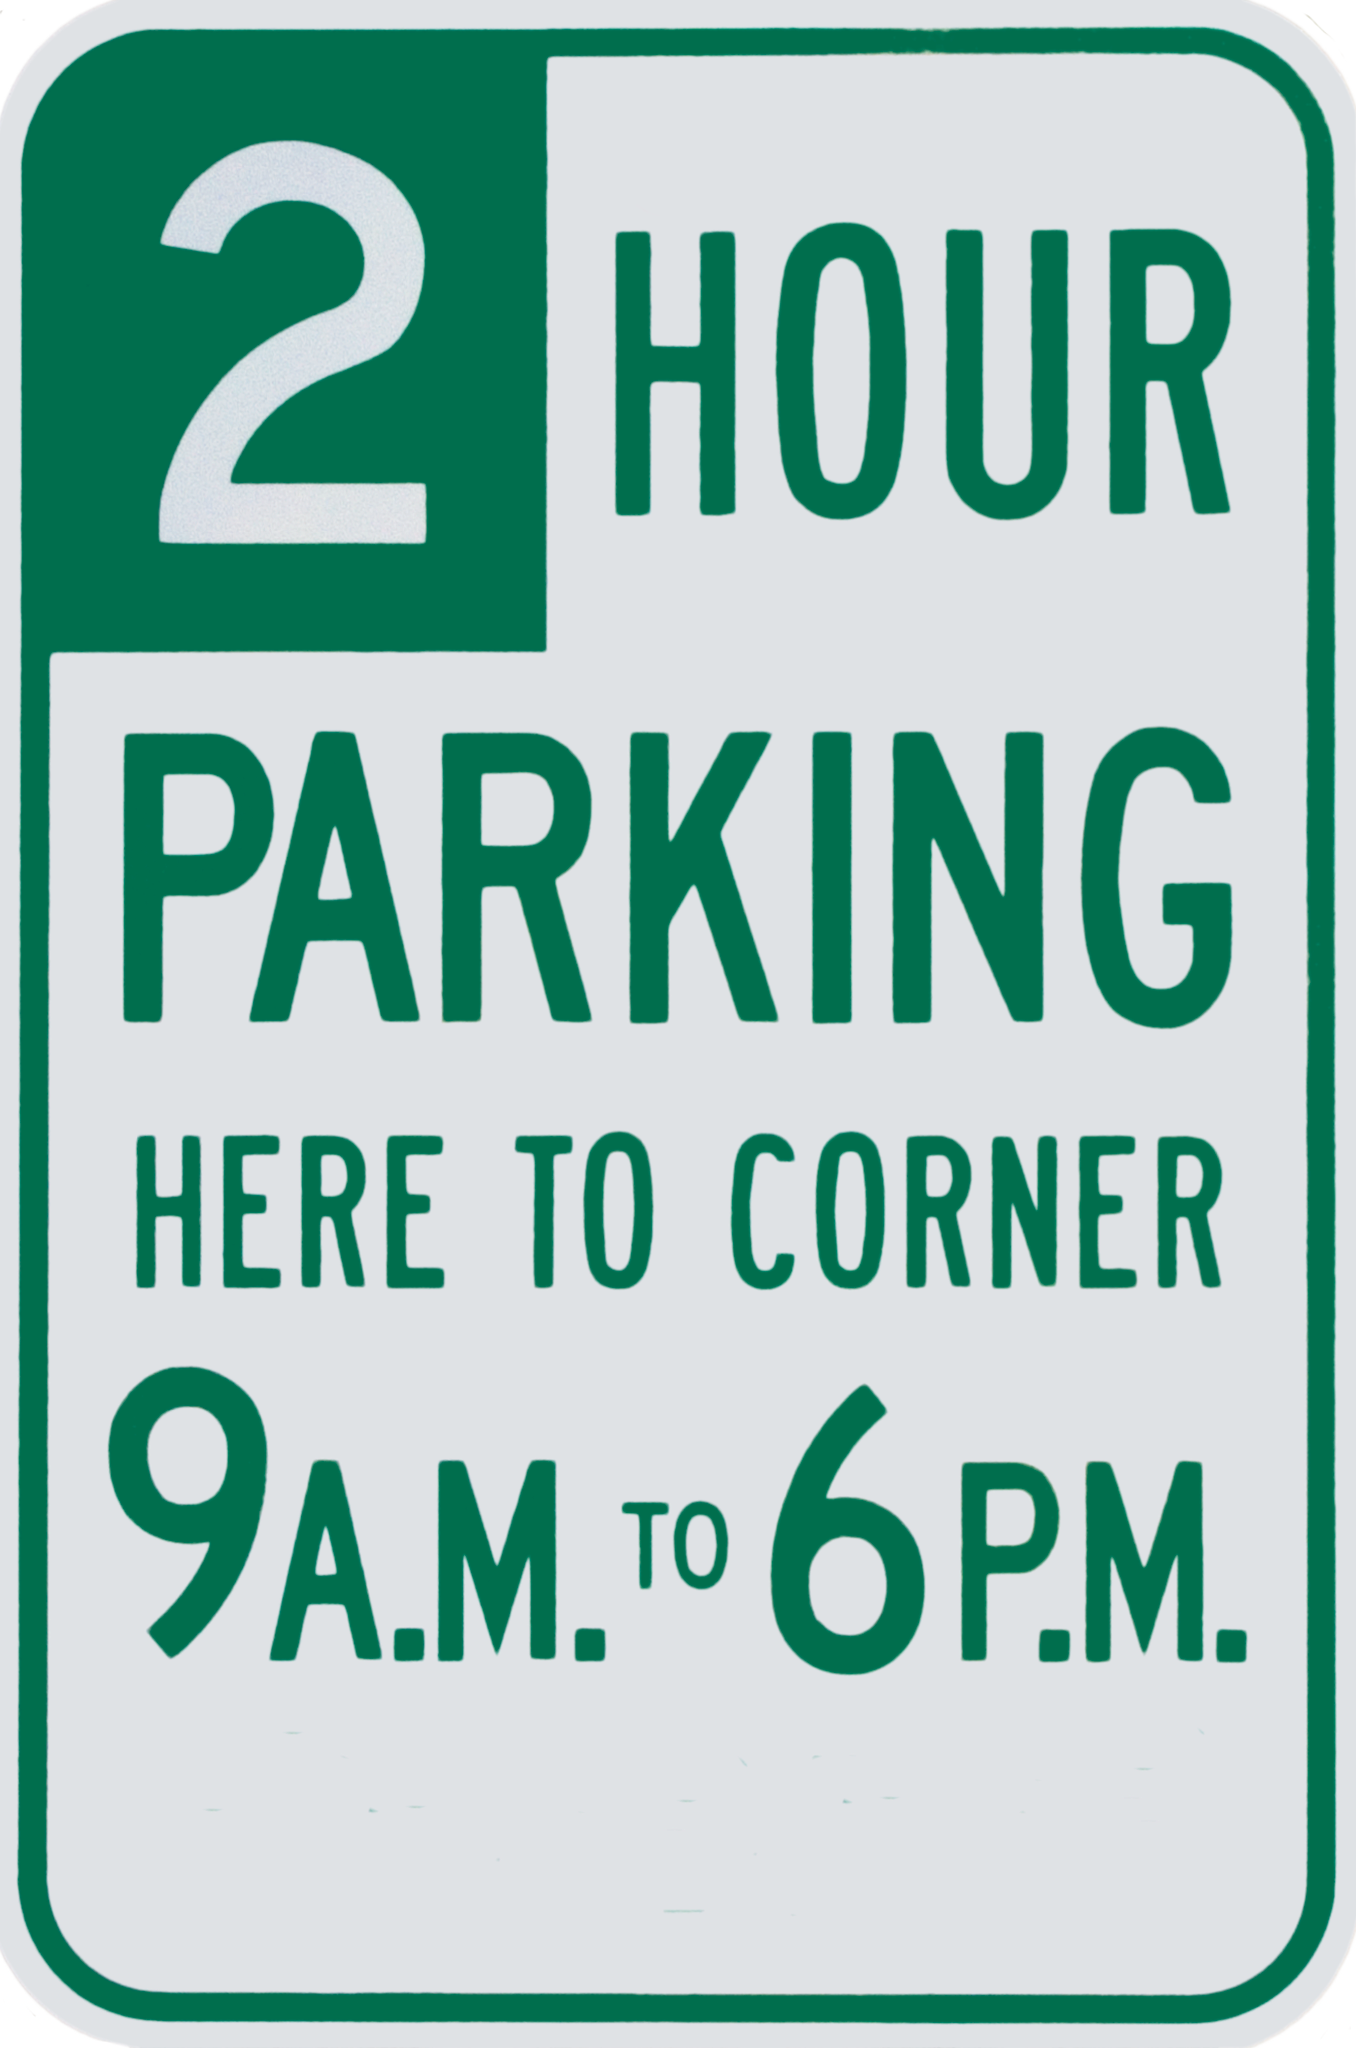 2 Hour Parking.png